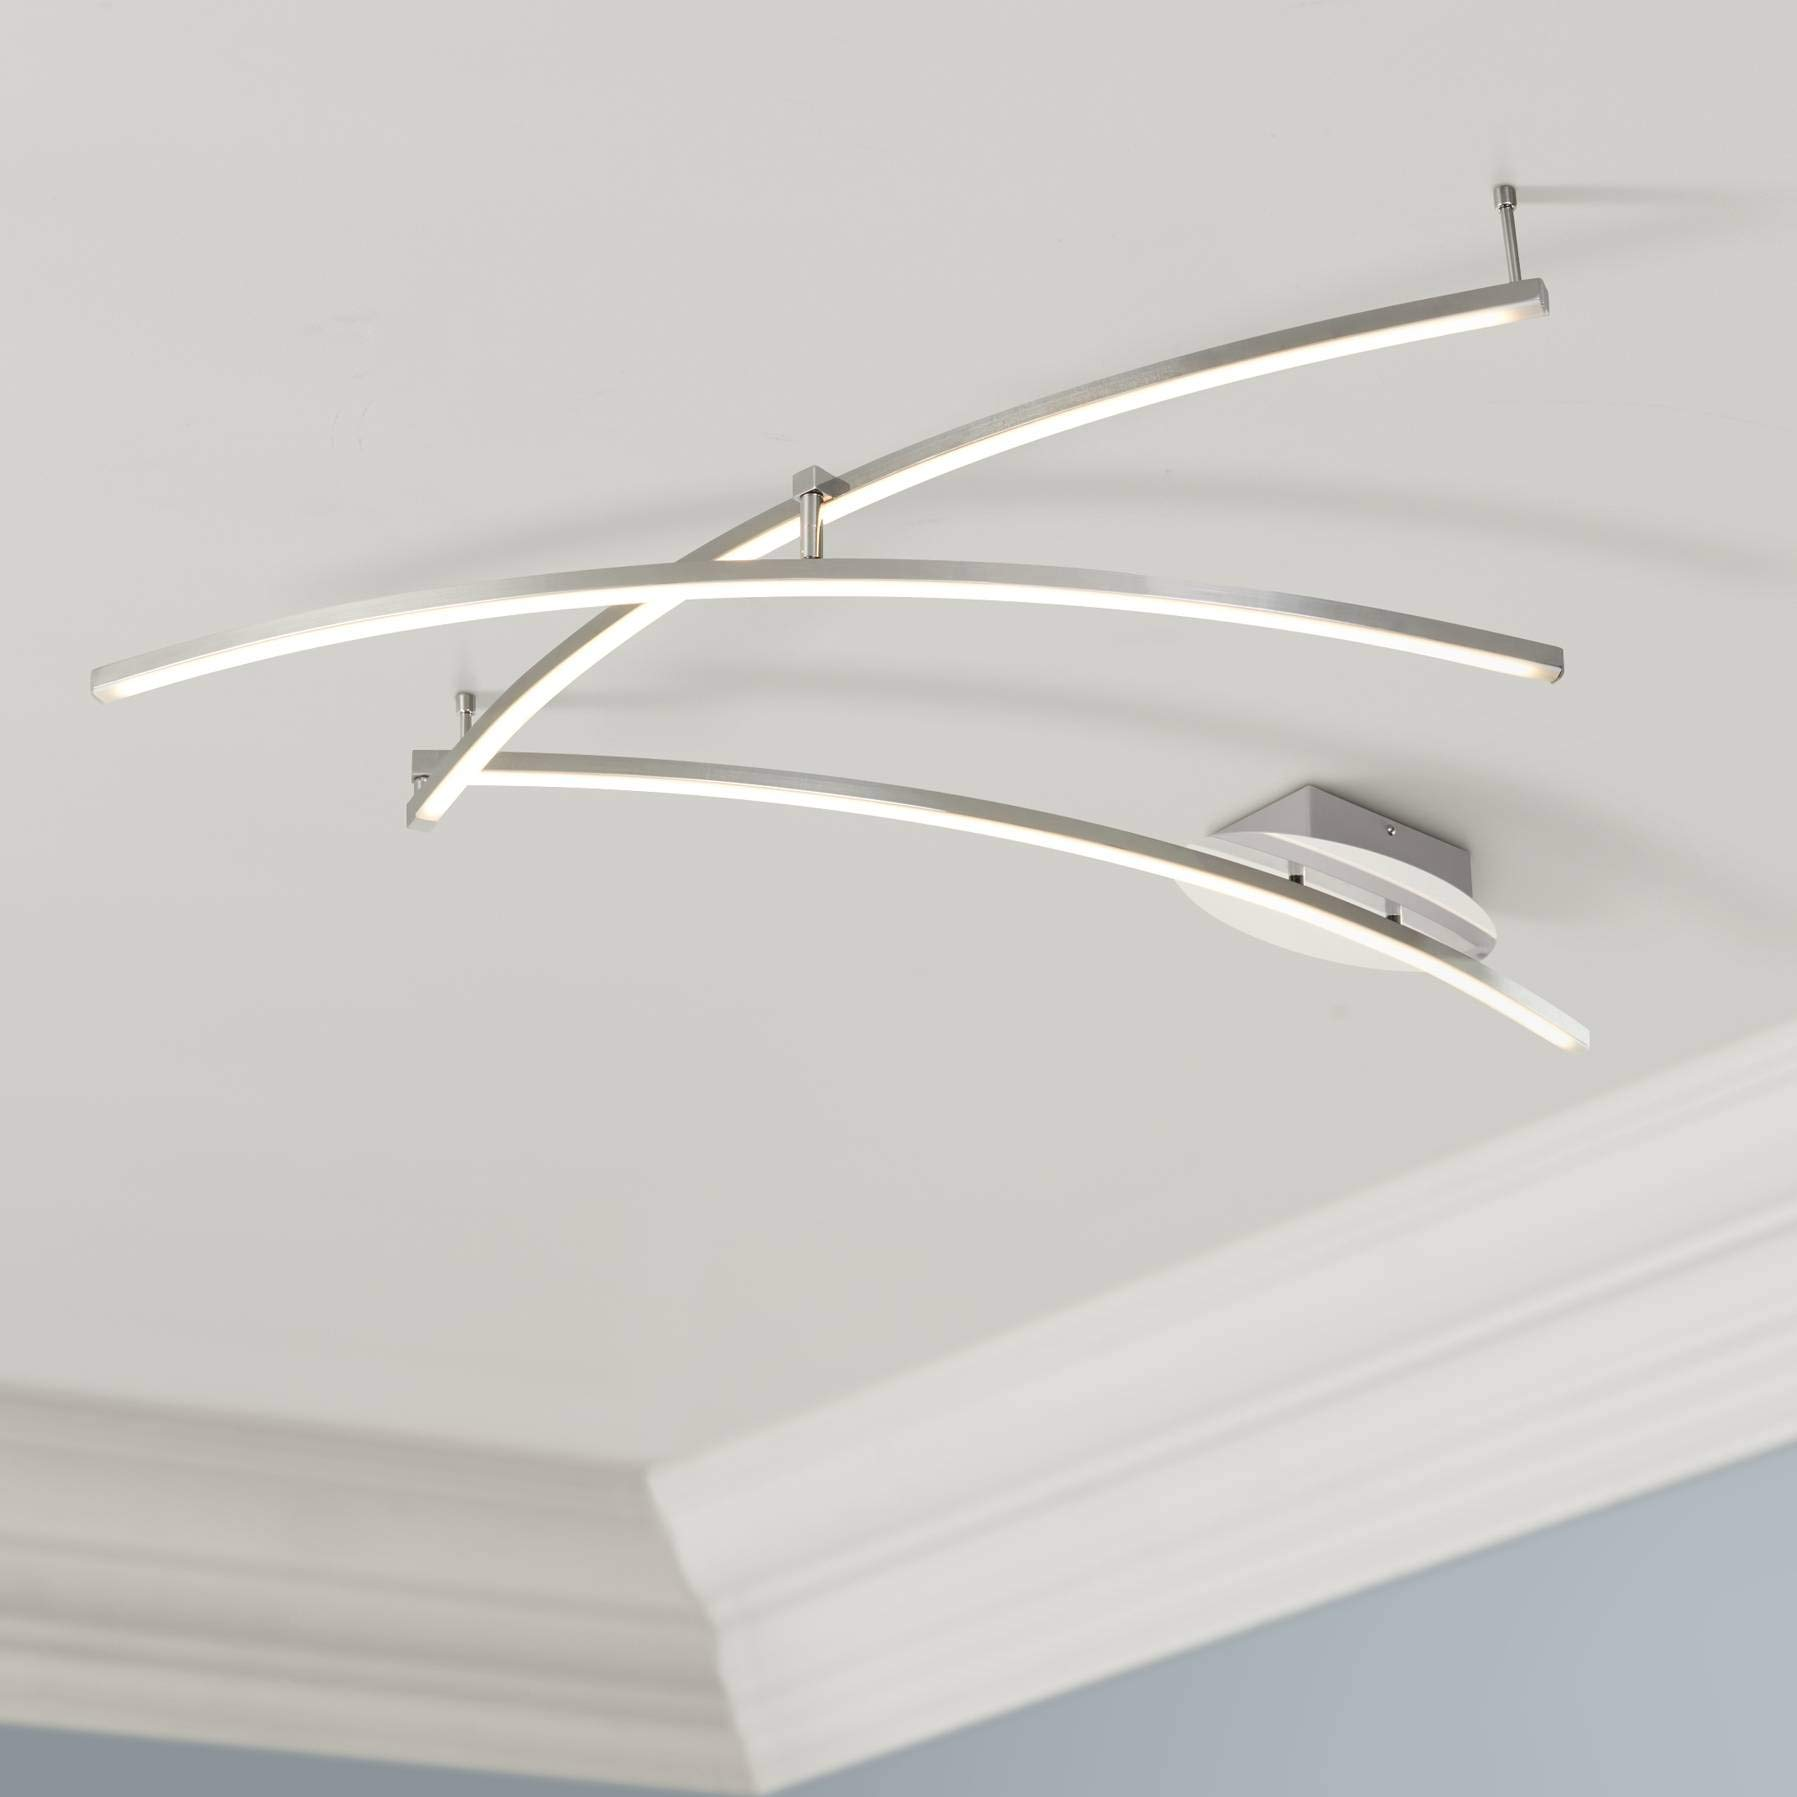 Wilfax Chrome 3-Arm LED Track Fixture by Pro Track - Pro Track